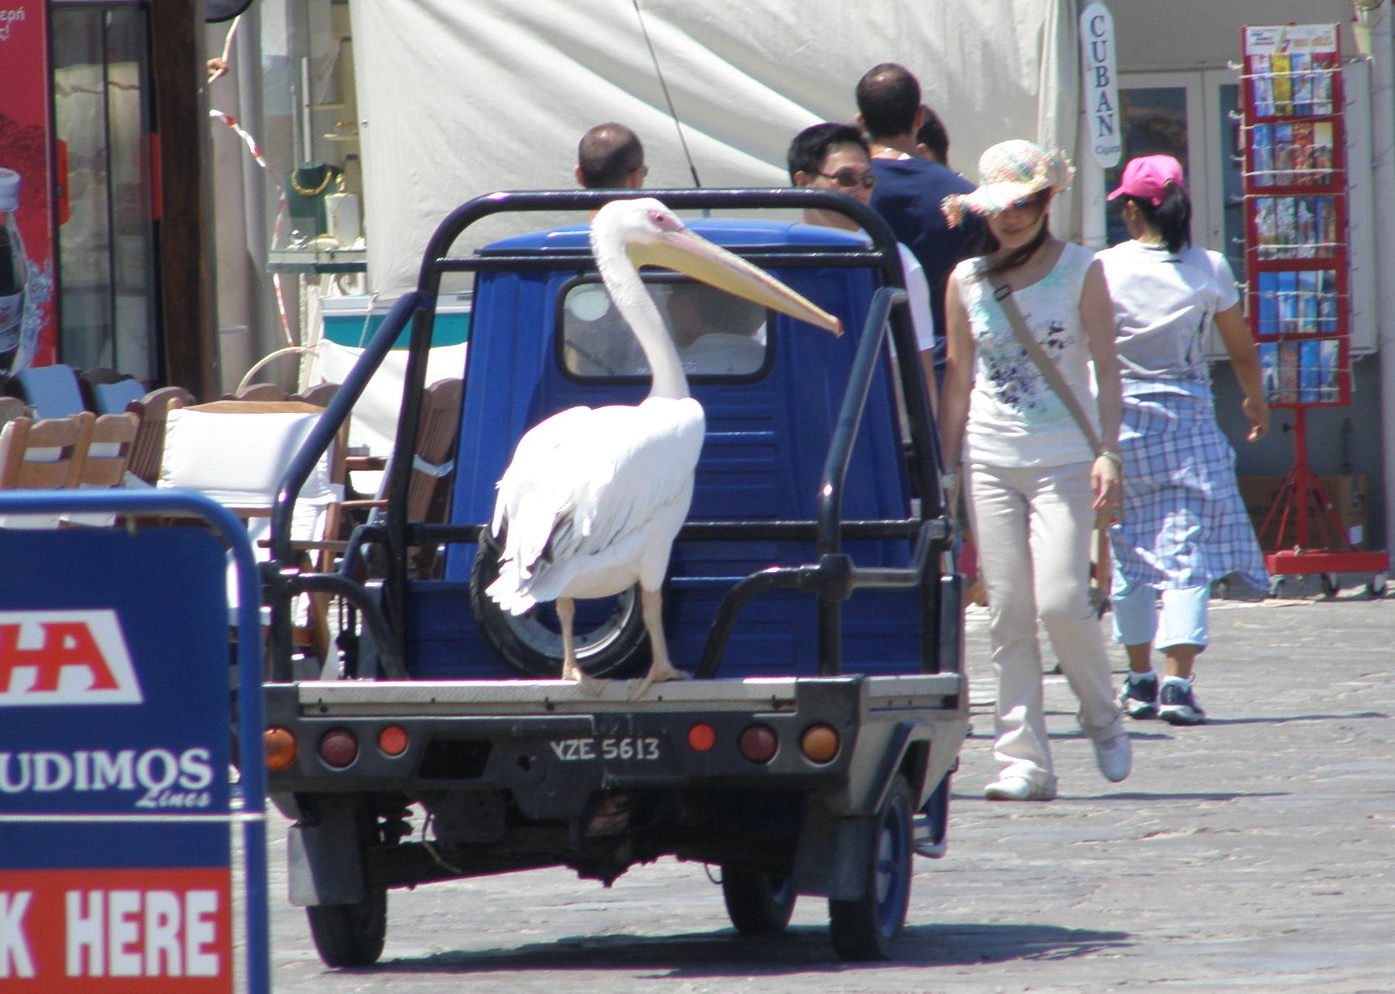 Pelicans are common on Mykenos, and this one hitchiked through town. Mykenos, Greece: Chapter 61, You must only to love them. http://mershon.wordpress.com